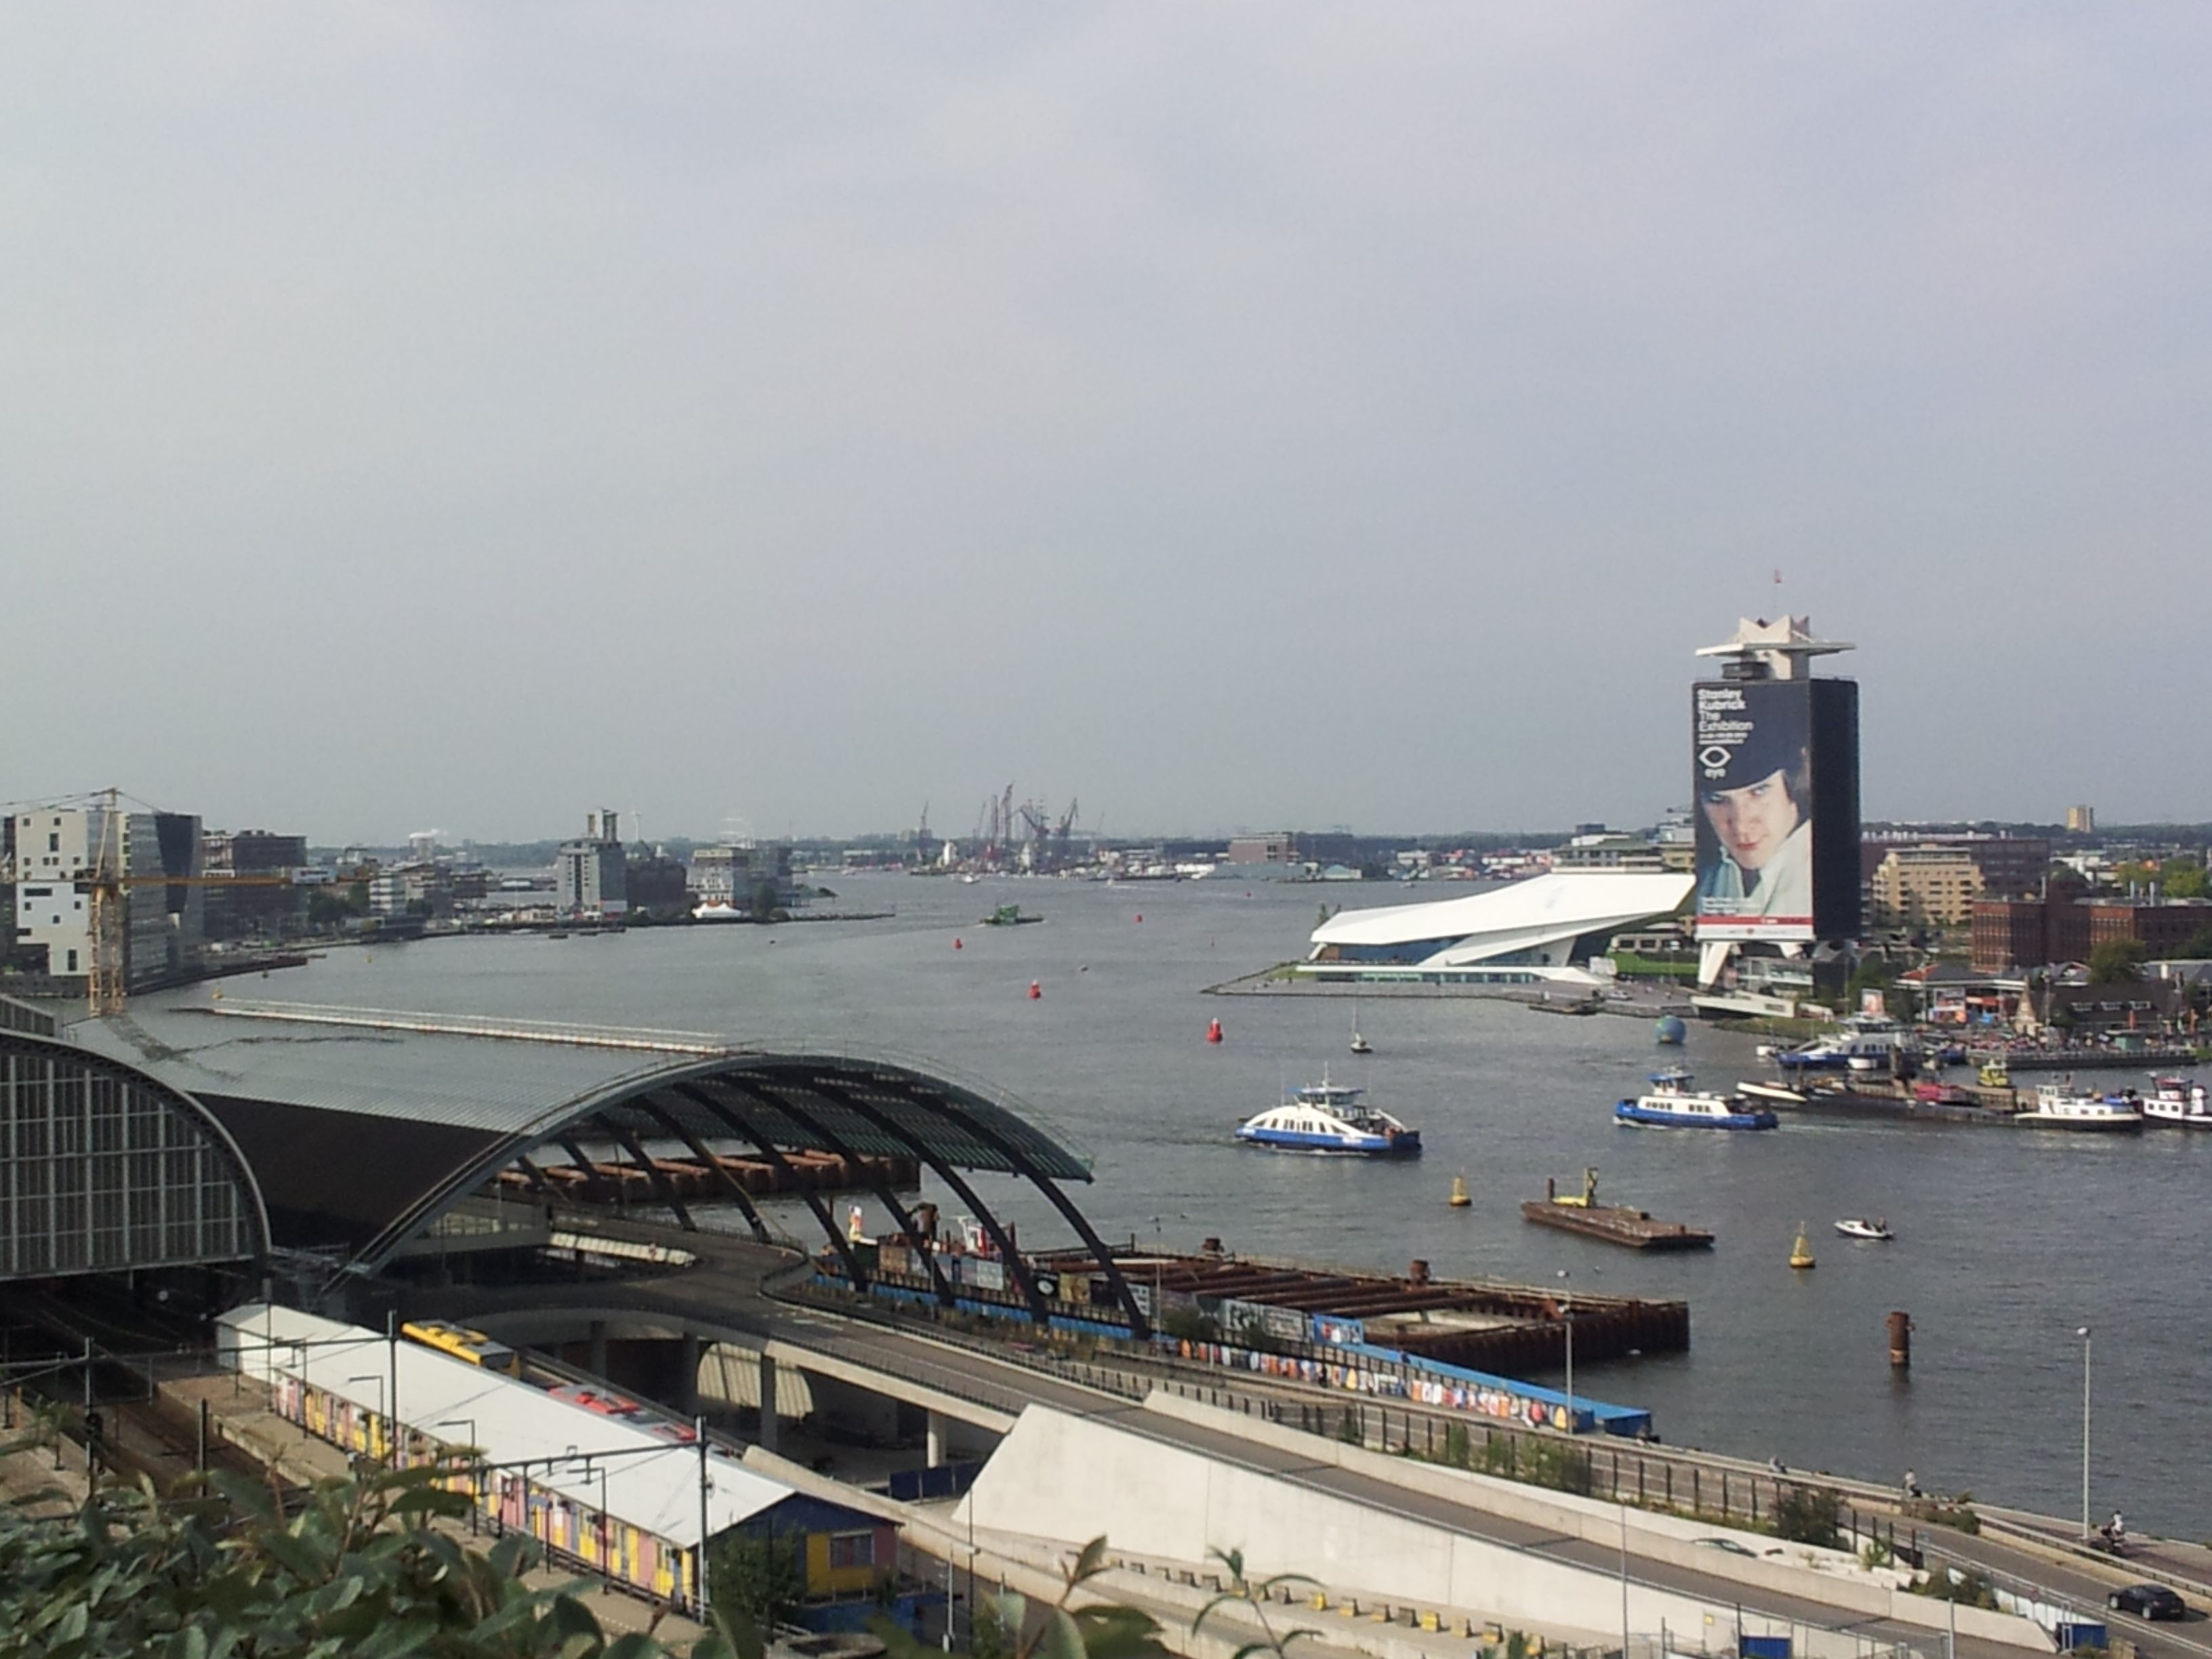 From the rooftop in Amsterdam. The Hilton near the station